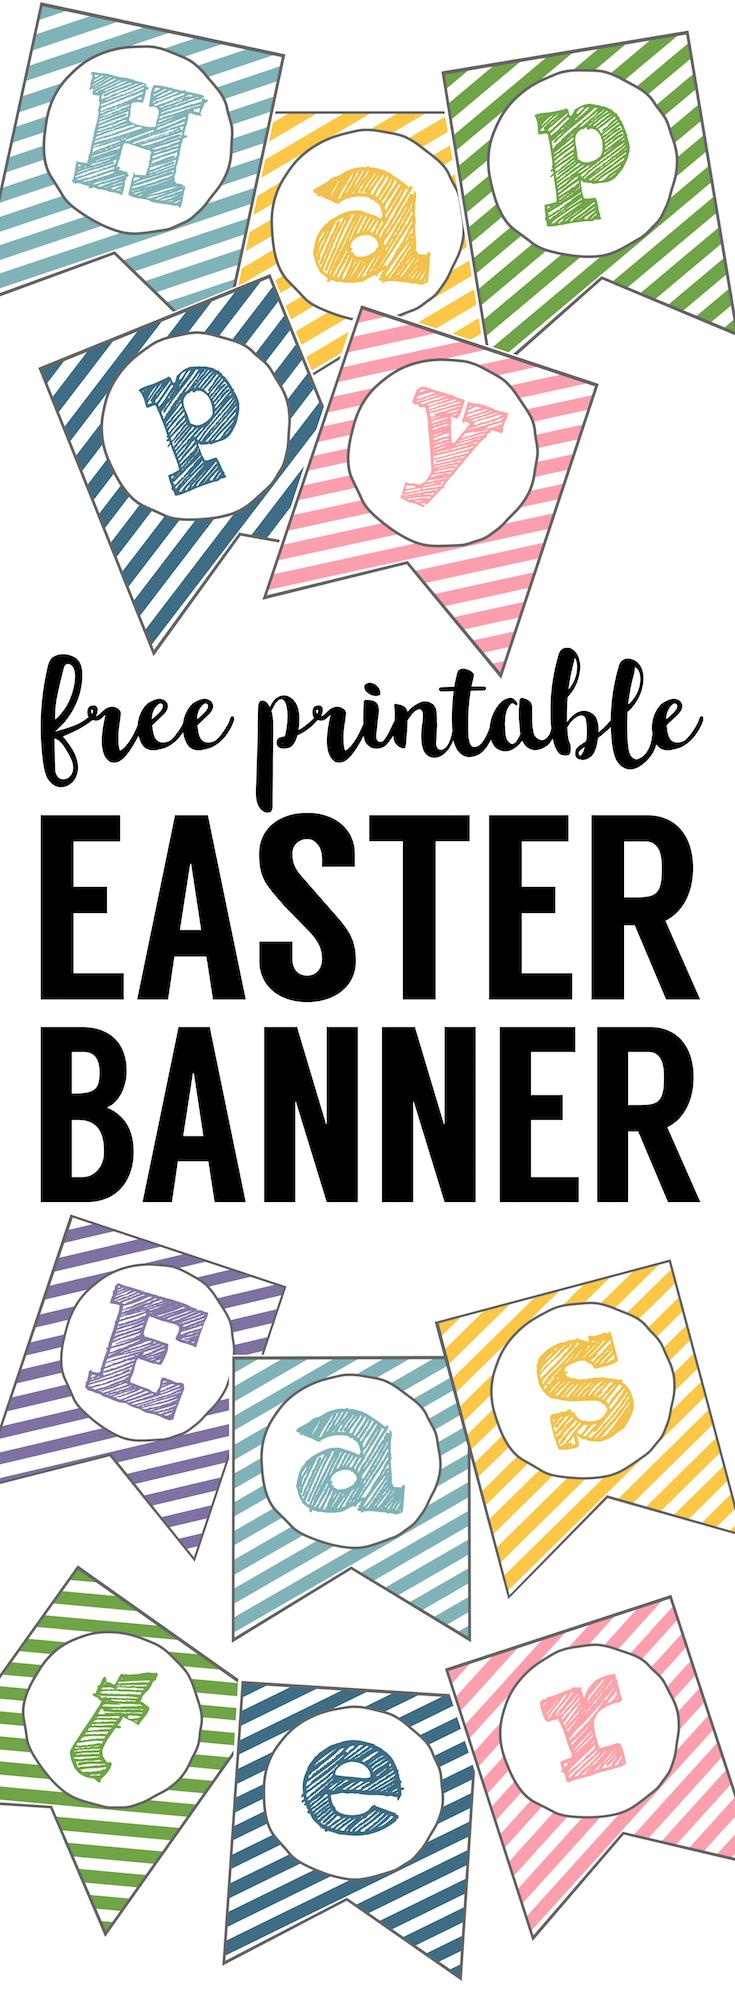 image about Happy Easter Sign Printable named Easter Banner Cost-free Printable Joyful Easter - Paper Path Layout